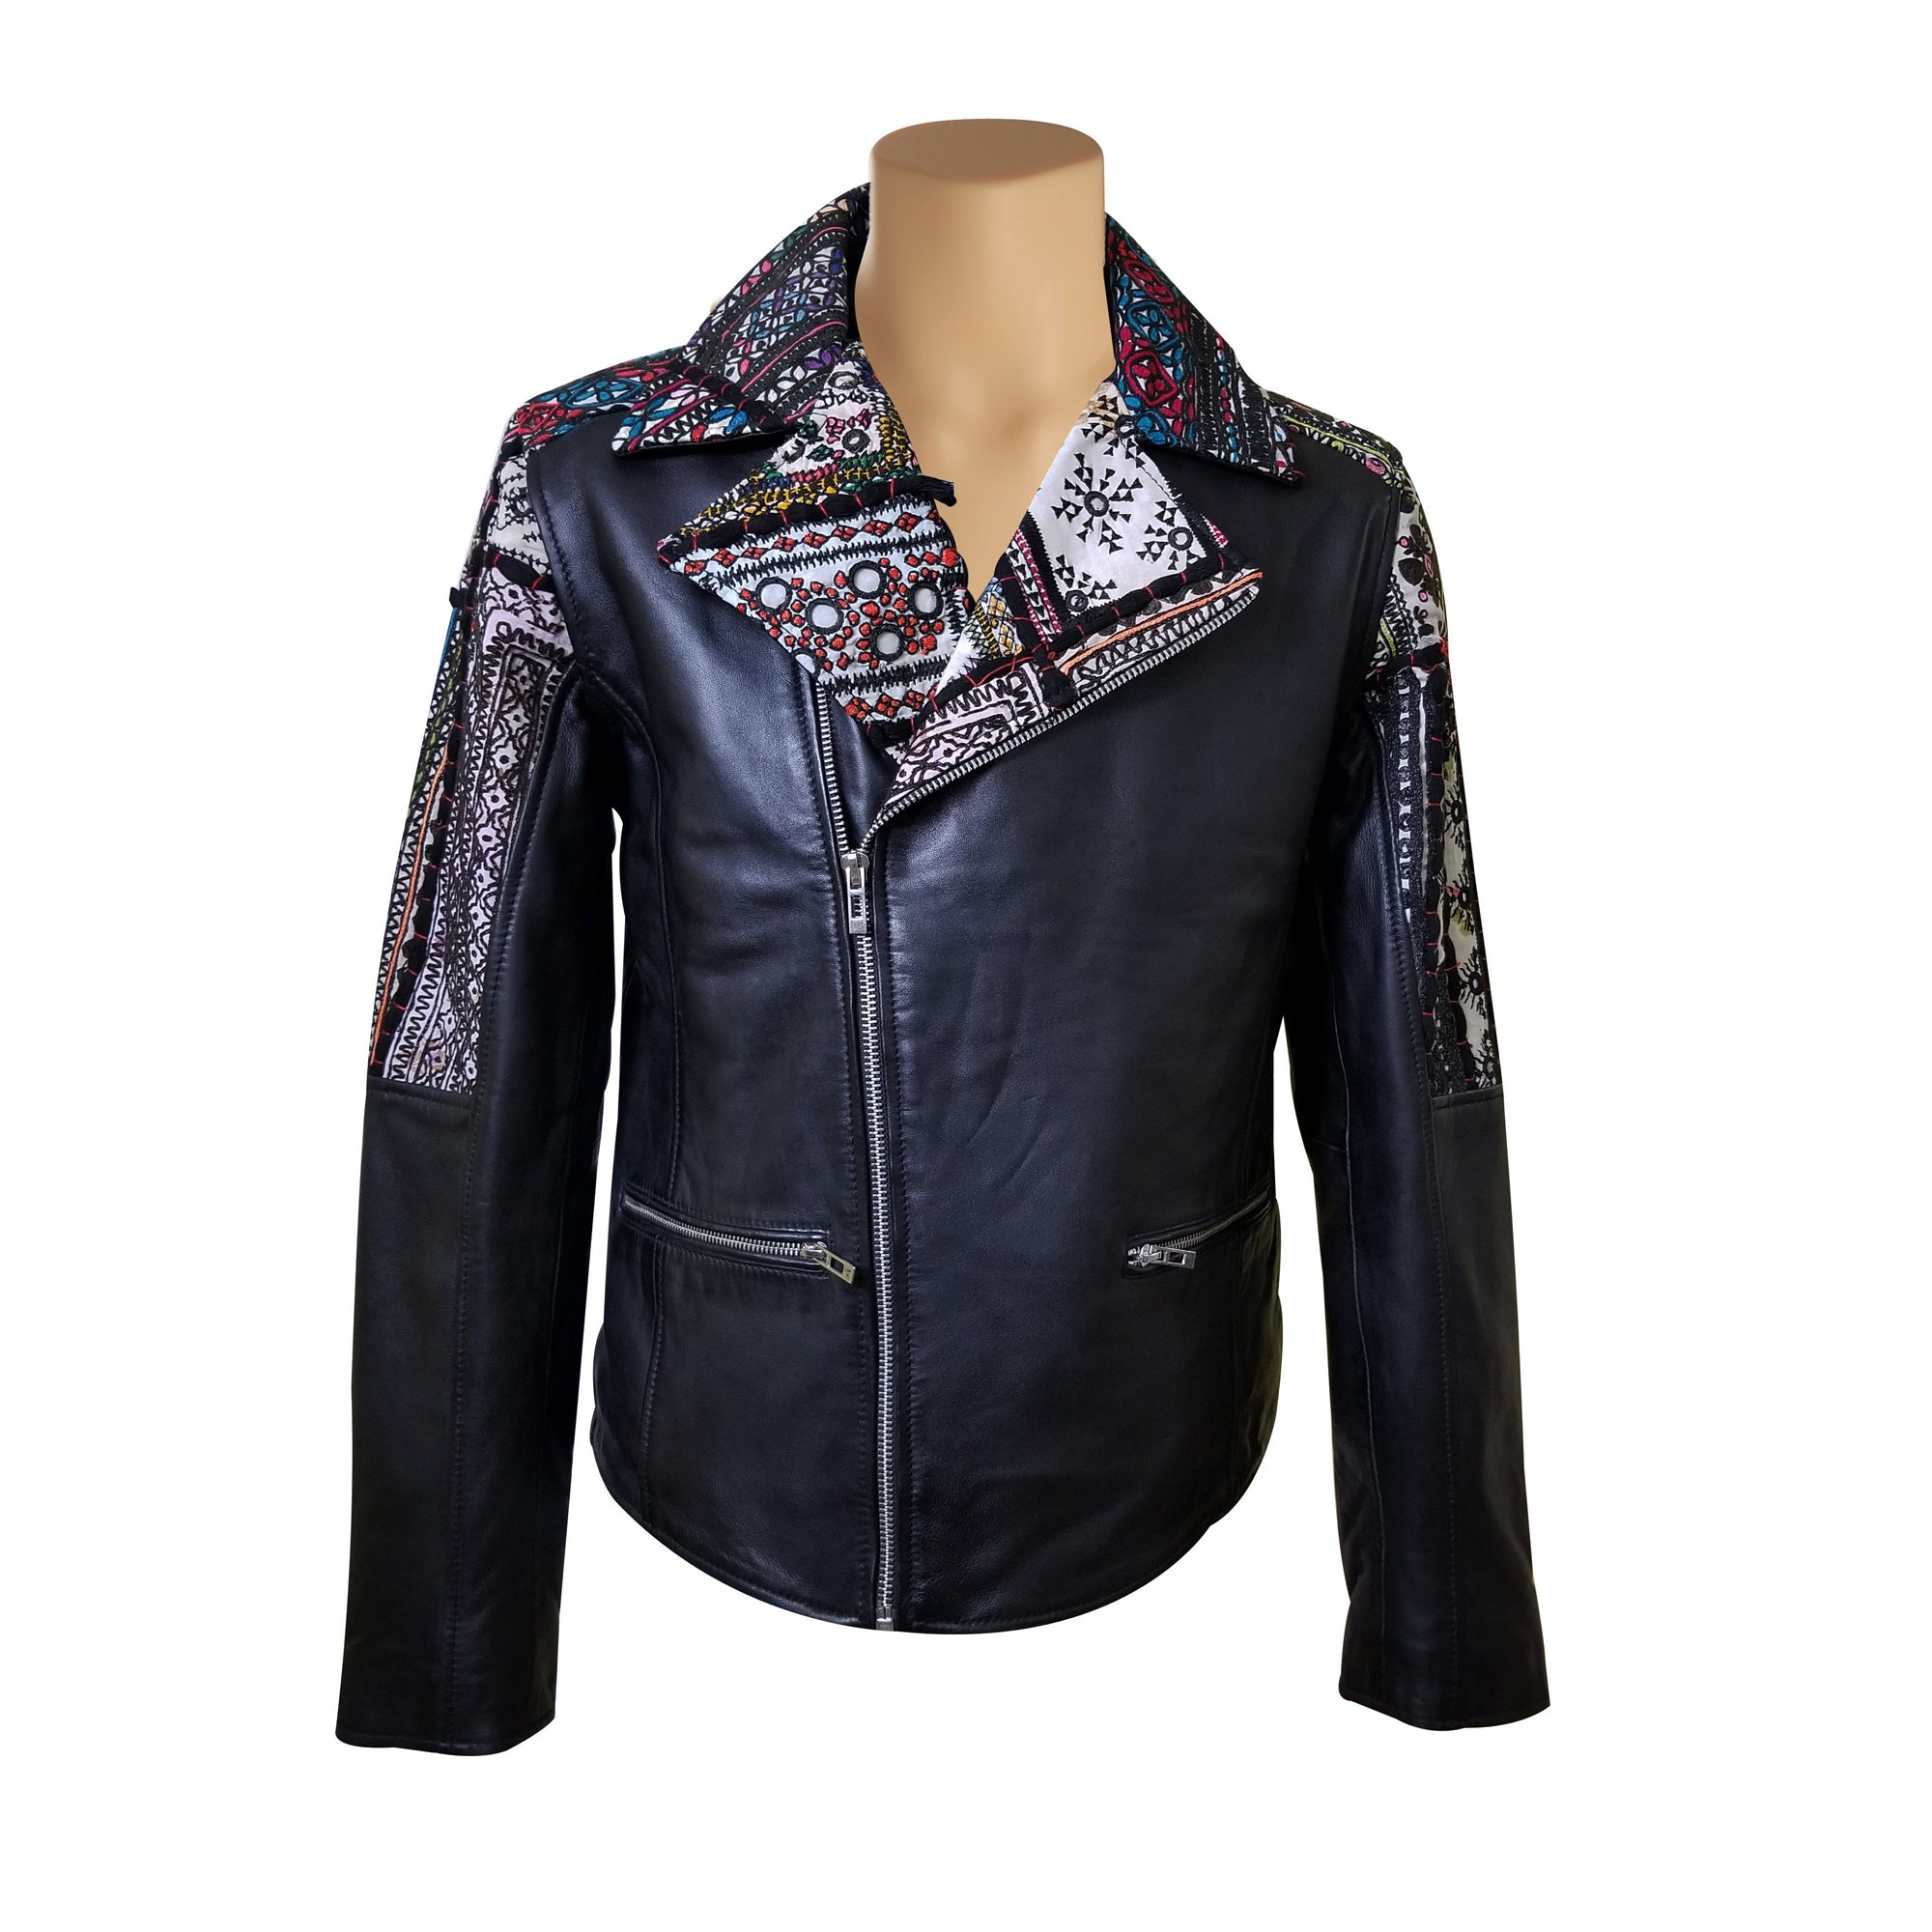 Bohemian Leather jacket with Tribal Hand Embroidered Fabric